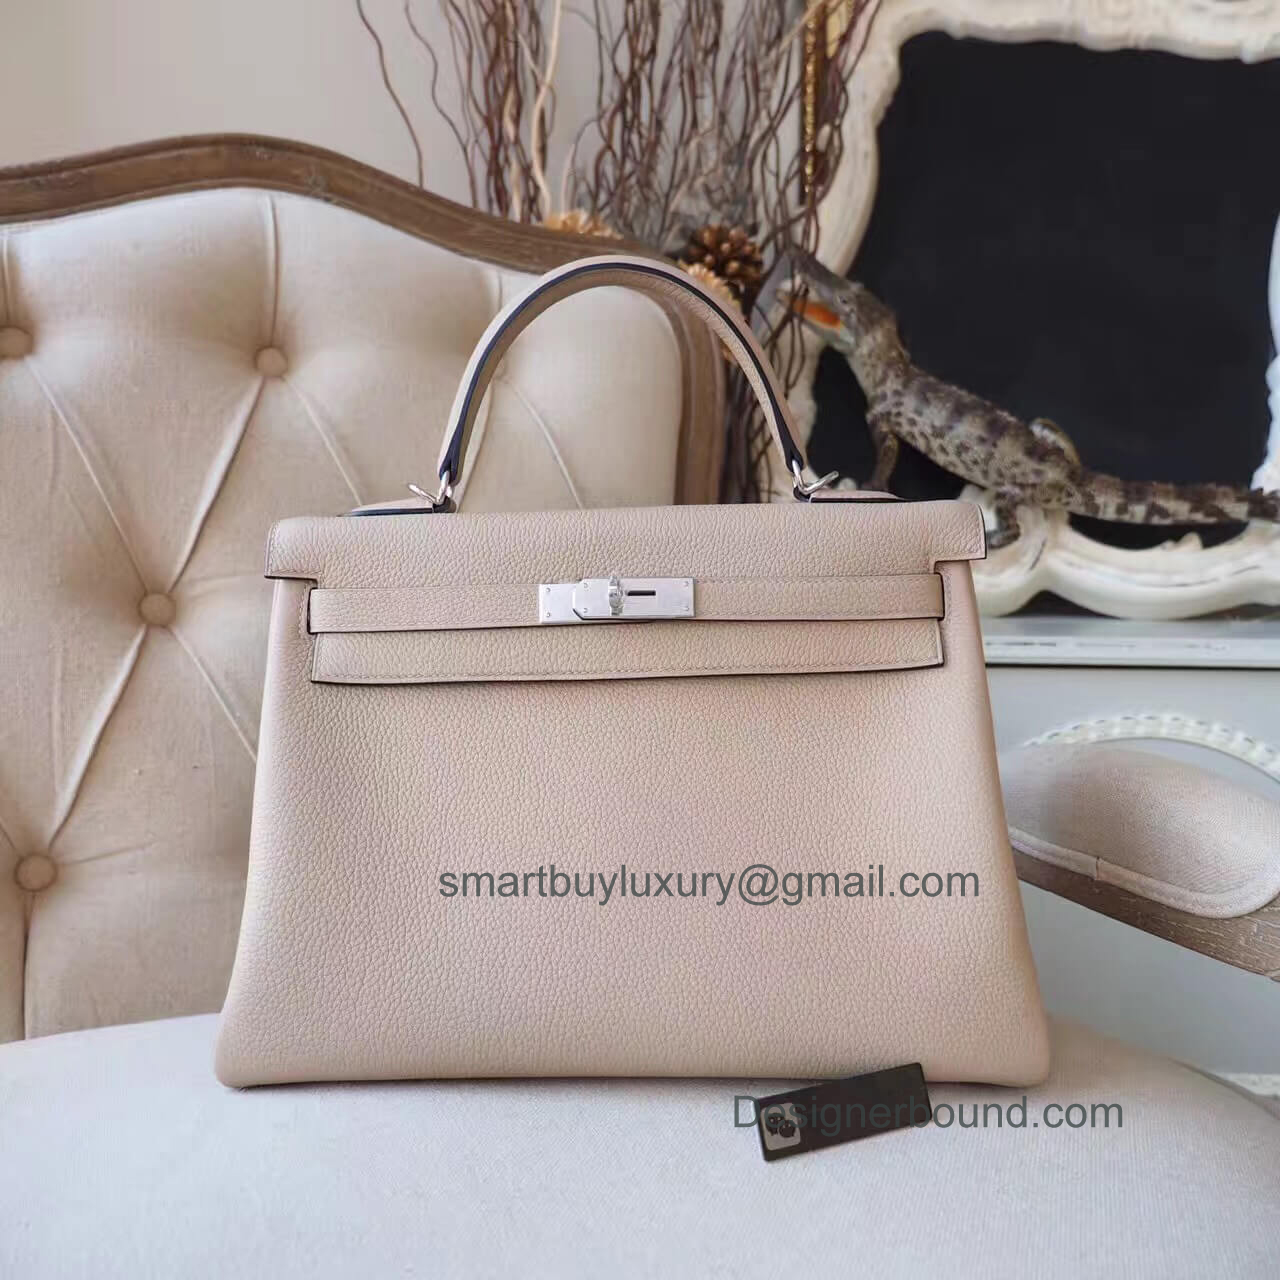 Hermes Kelly 32 Bag in s2 Trench Togo PHW